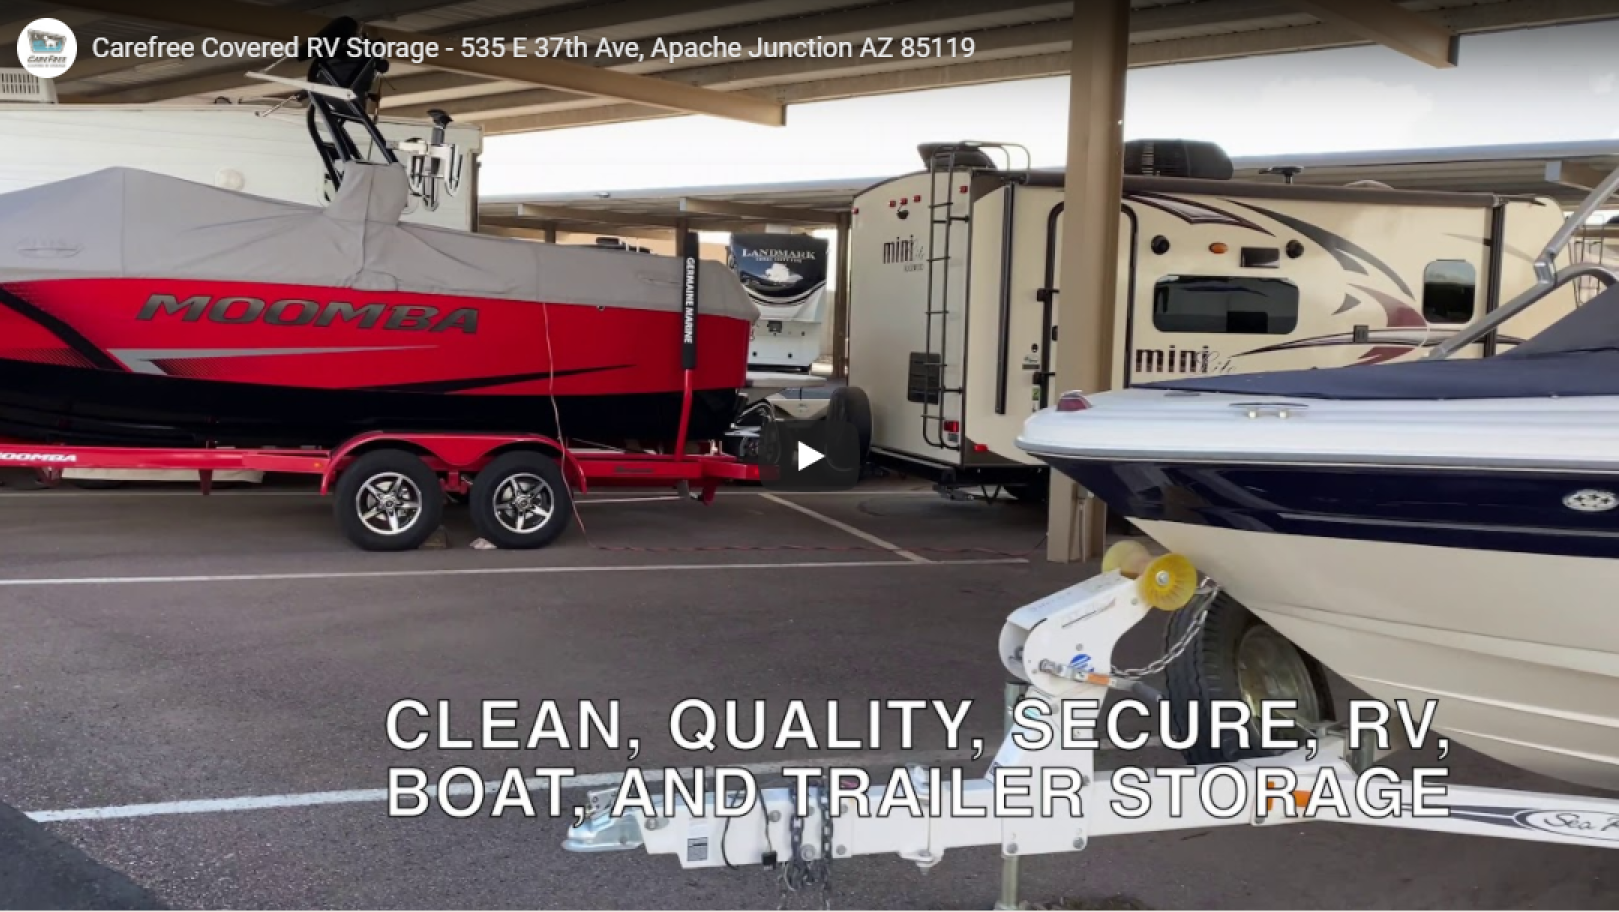 Covered RV and Boat Storage Video at Carefree in Apache Junction Arizona